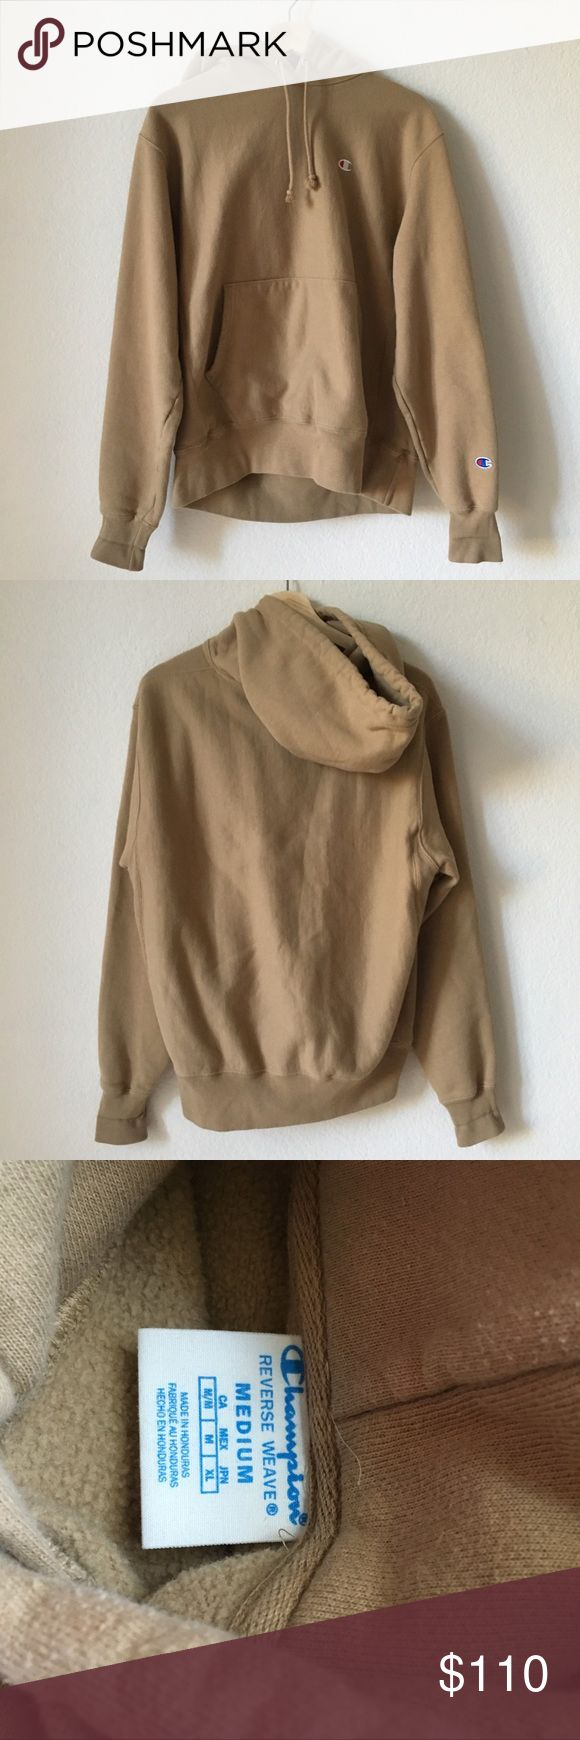 Champion x UO tan reverse weave hoodie Champion x Urban Outfitters Exclusive Reverse Weave Hoodie in tan / beige / brown color. Wrists have been folded and minimal piling. In excellent condition Champion Shirts Sweatshirts & Hoodies